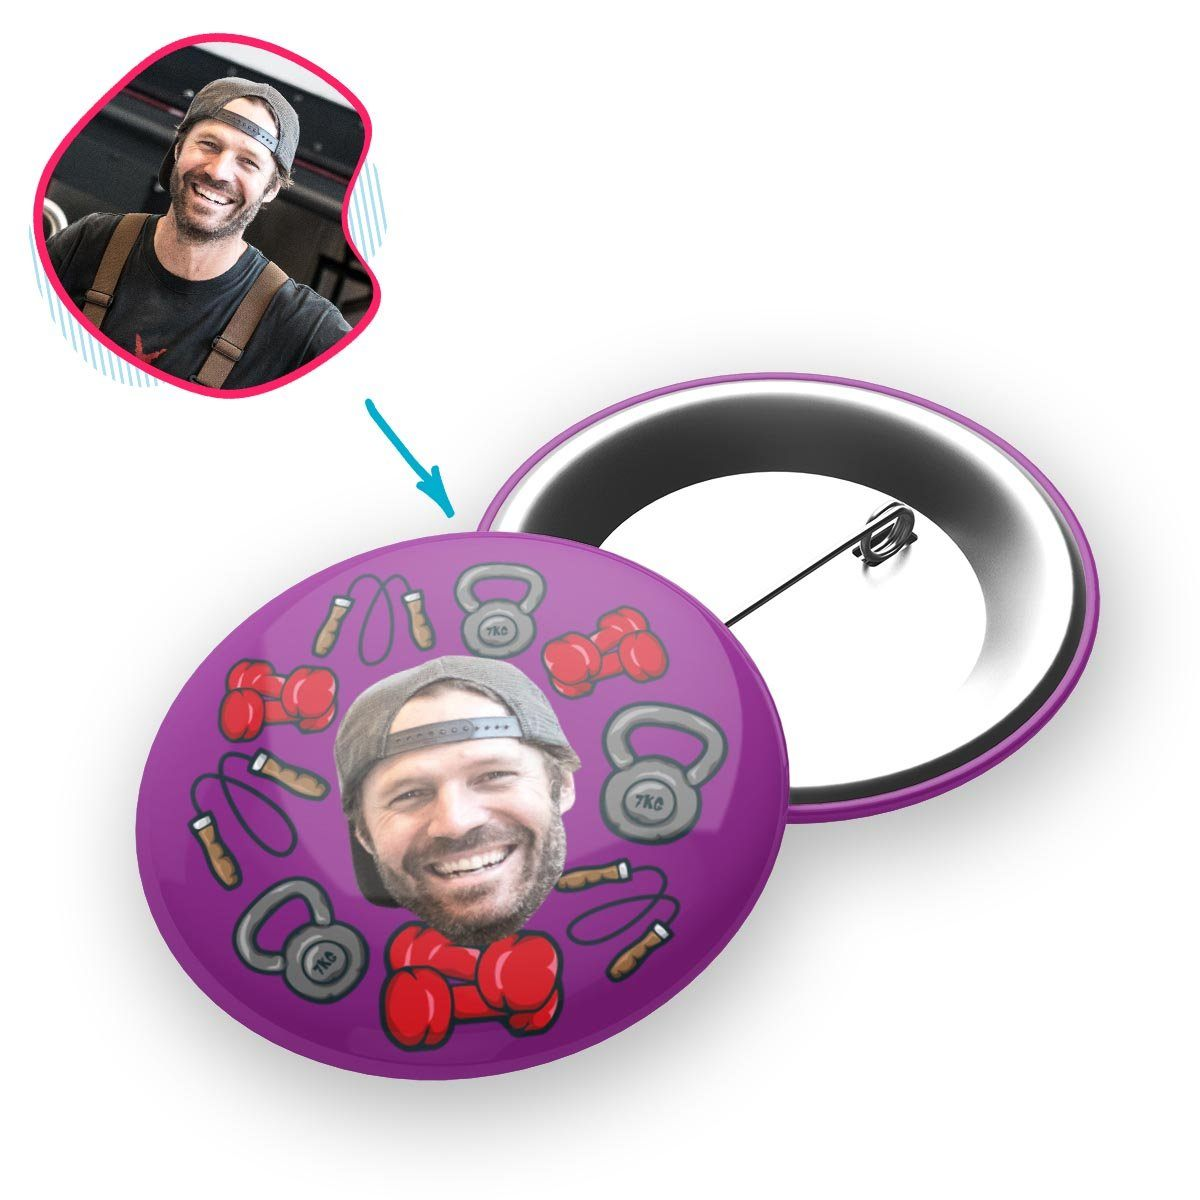 purple Gym & Fitness pin personalized with photo of face printed on it